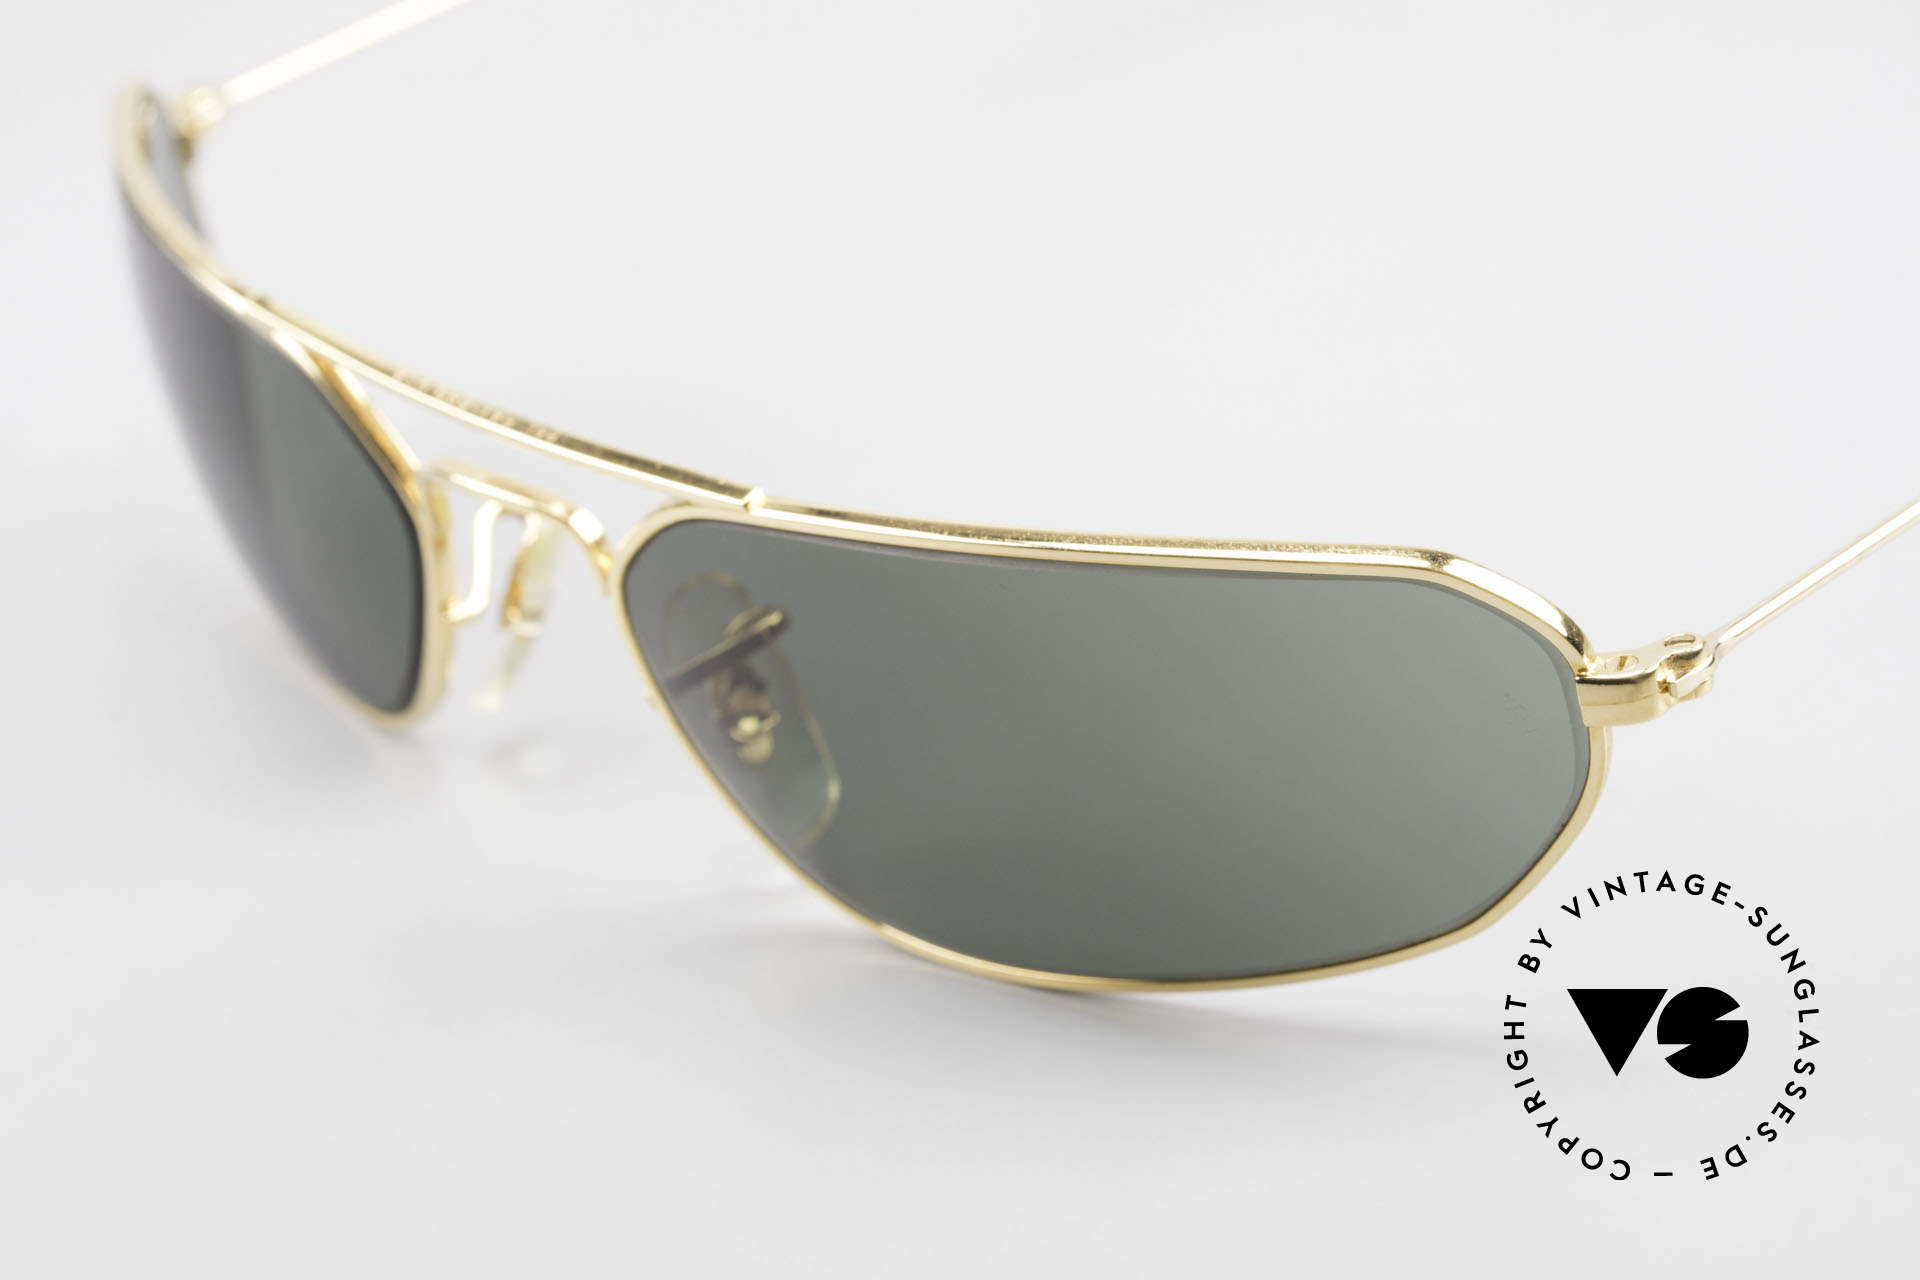 Ray Ban Fugitives Hexagon 90's Ray-Ban Bausch Lomb B&L, unworn (like all our VINTAGE Ray Ban sunglasses), Made for Men